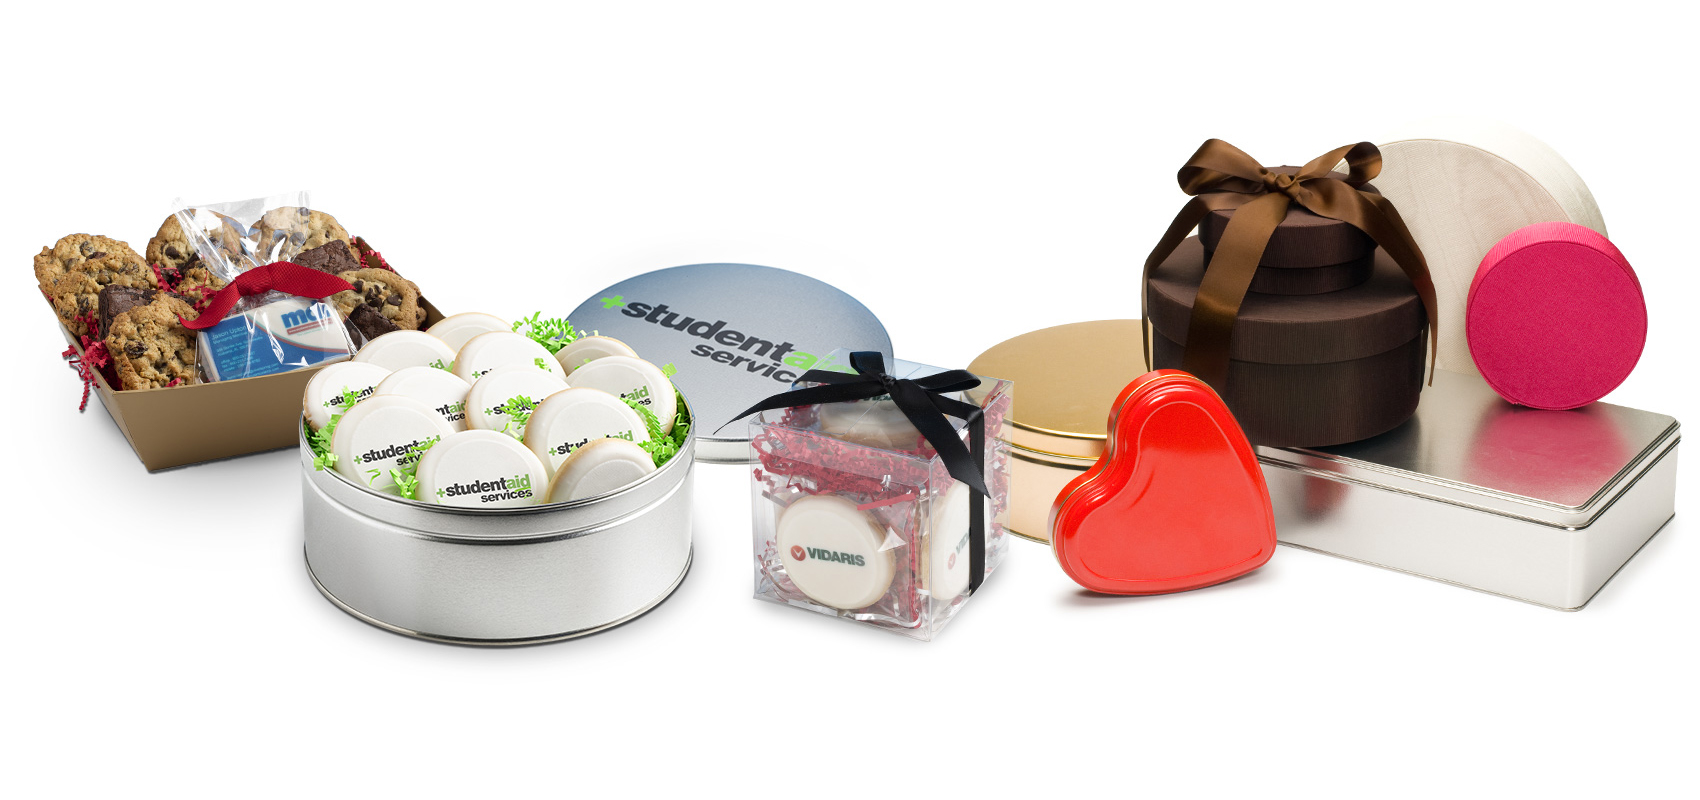 Custom logo cookies in various gift containers.